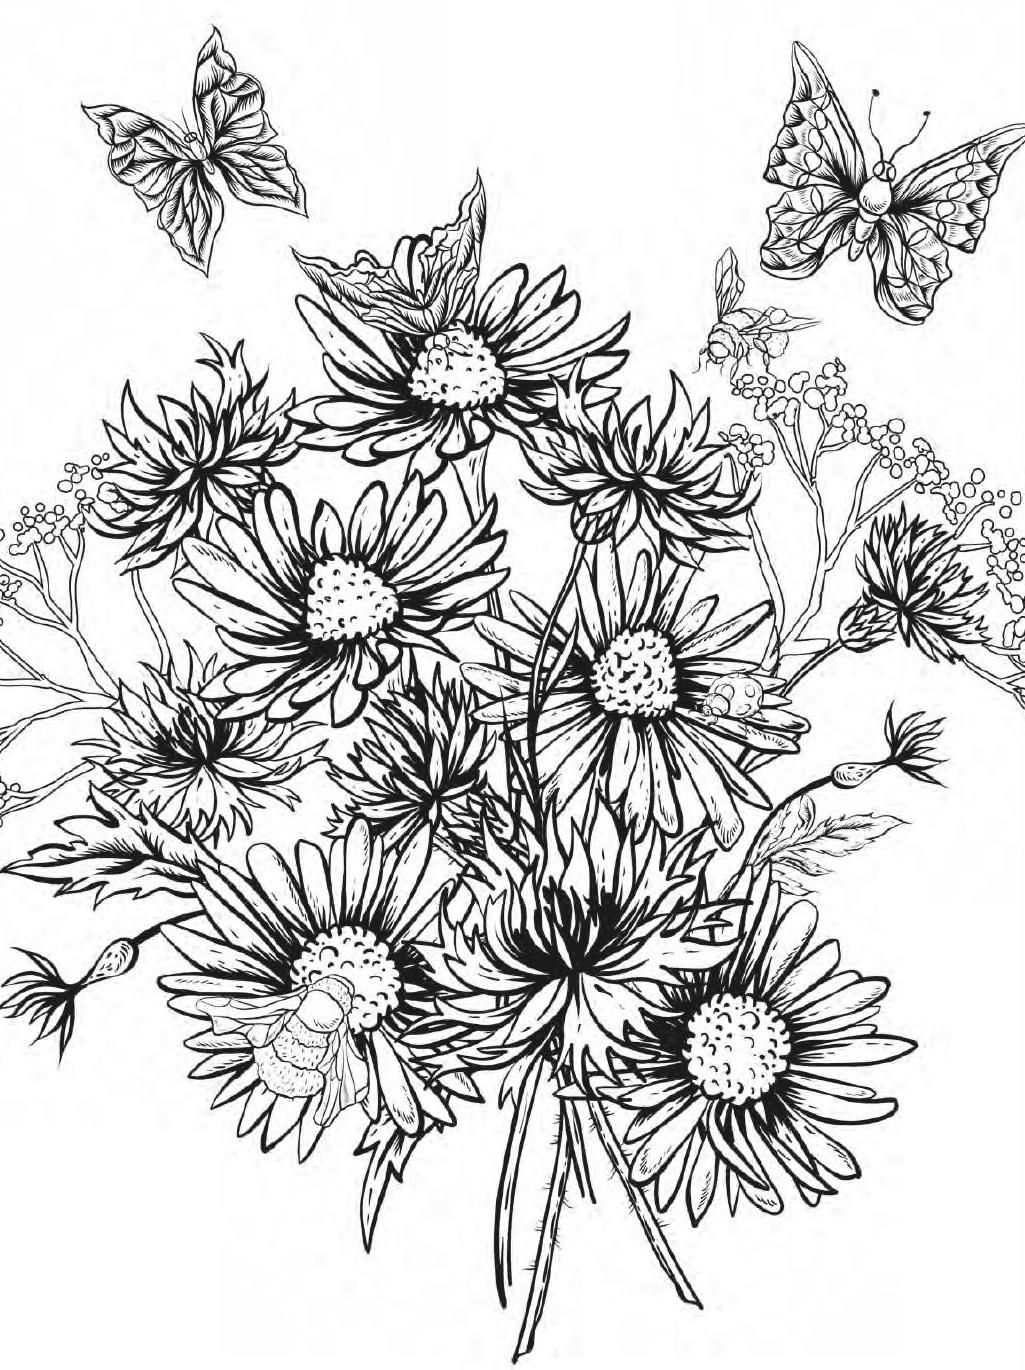 Beautiful Flowers Detailed Floral Designs Coloring Book Preview